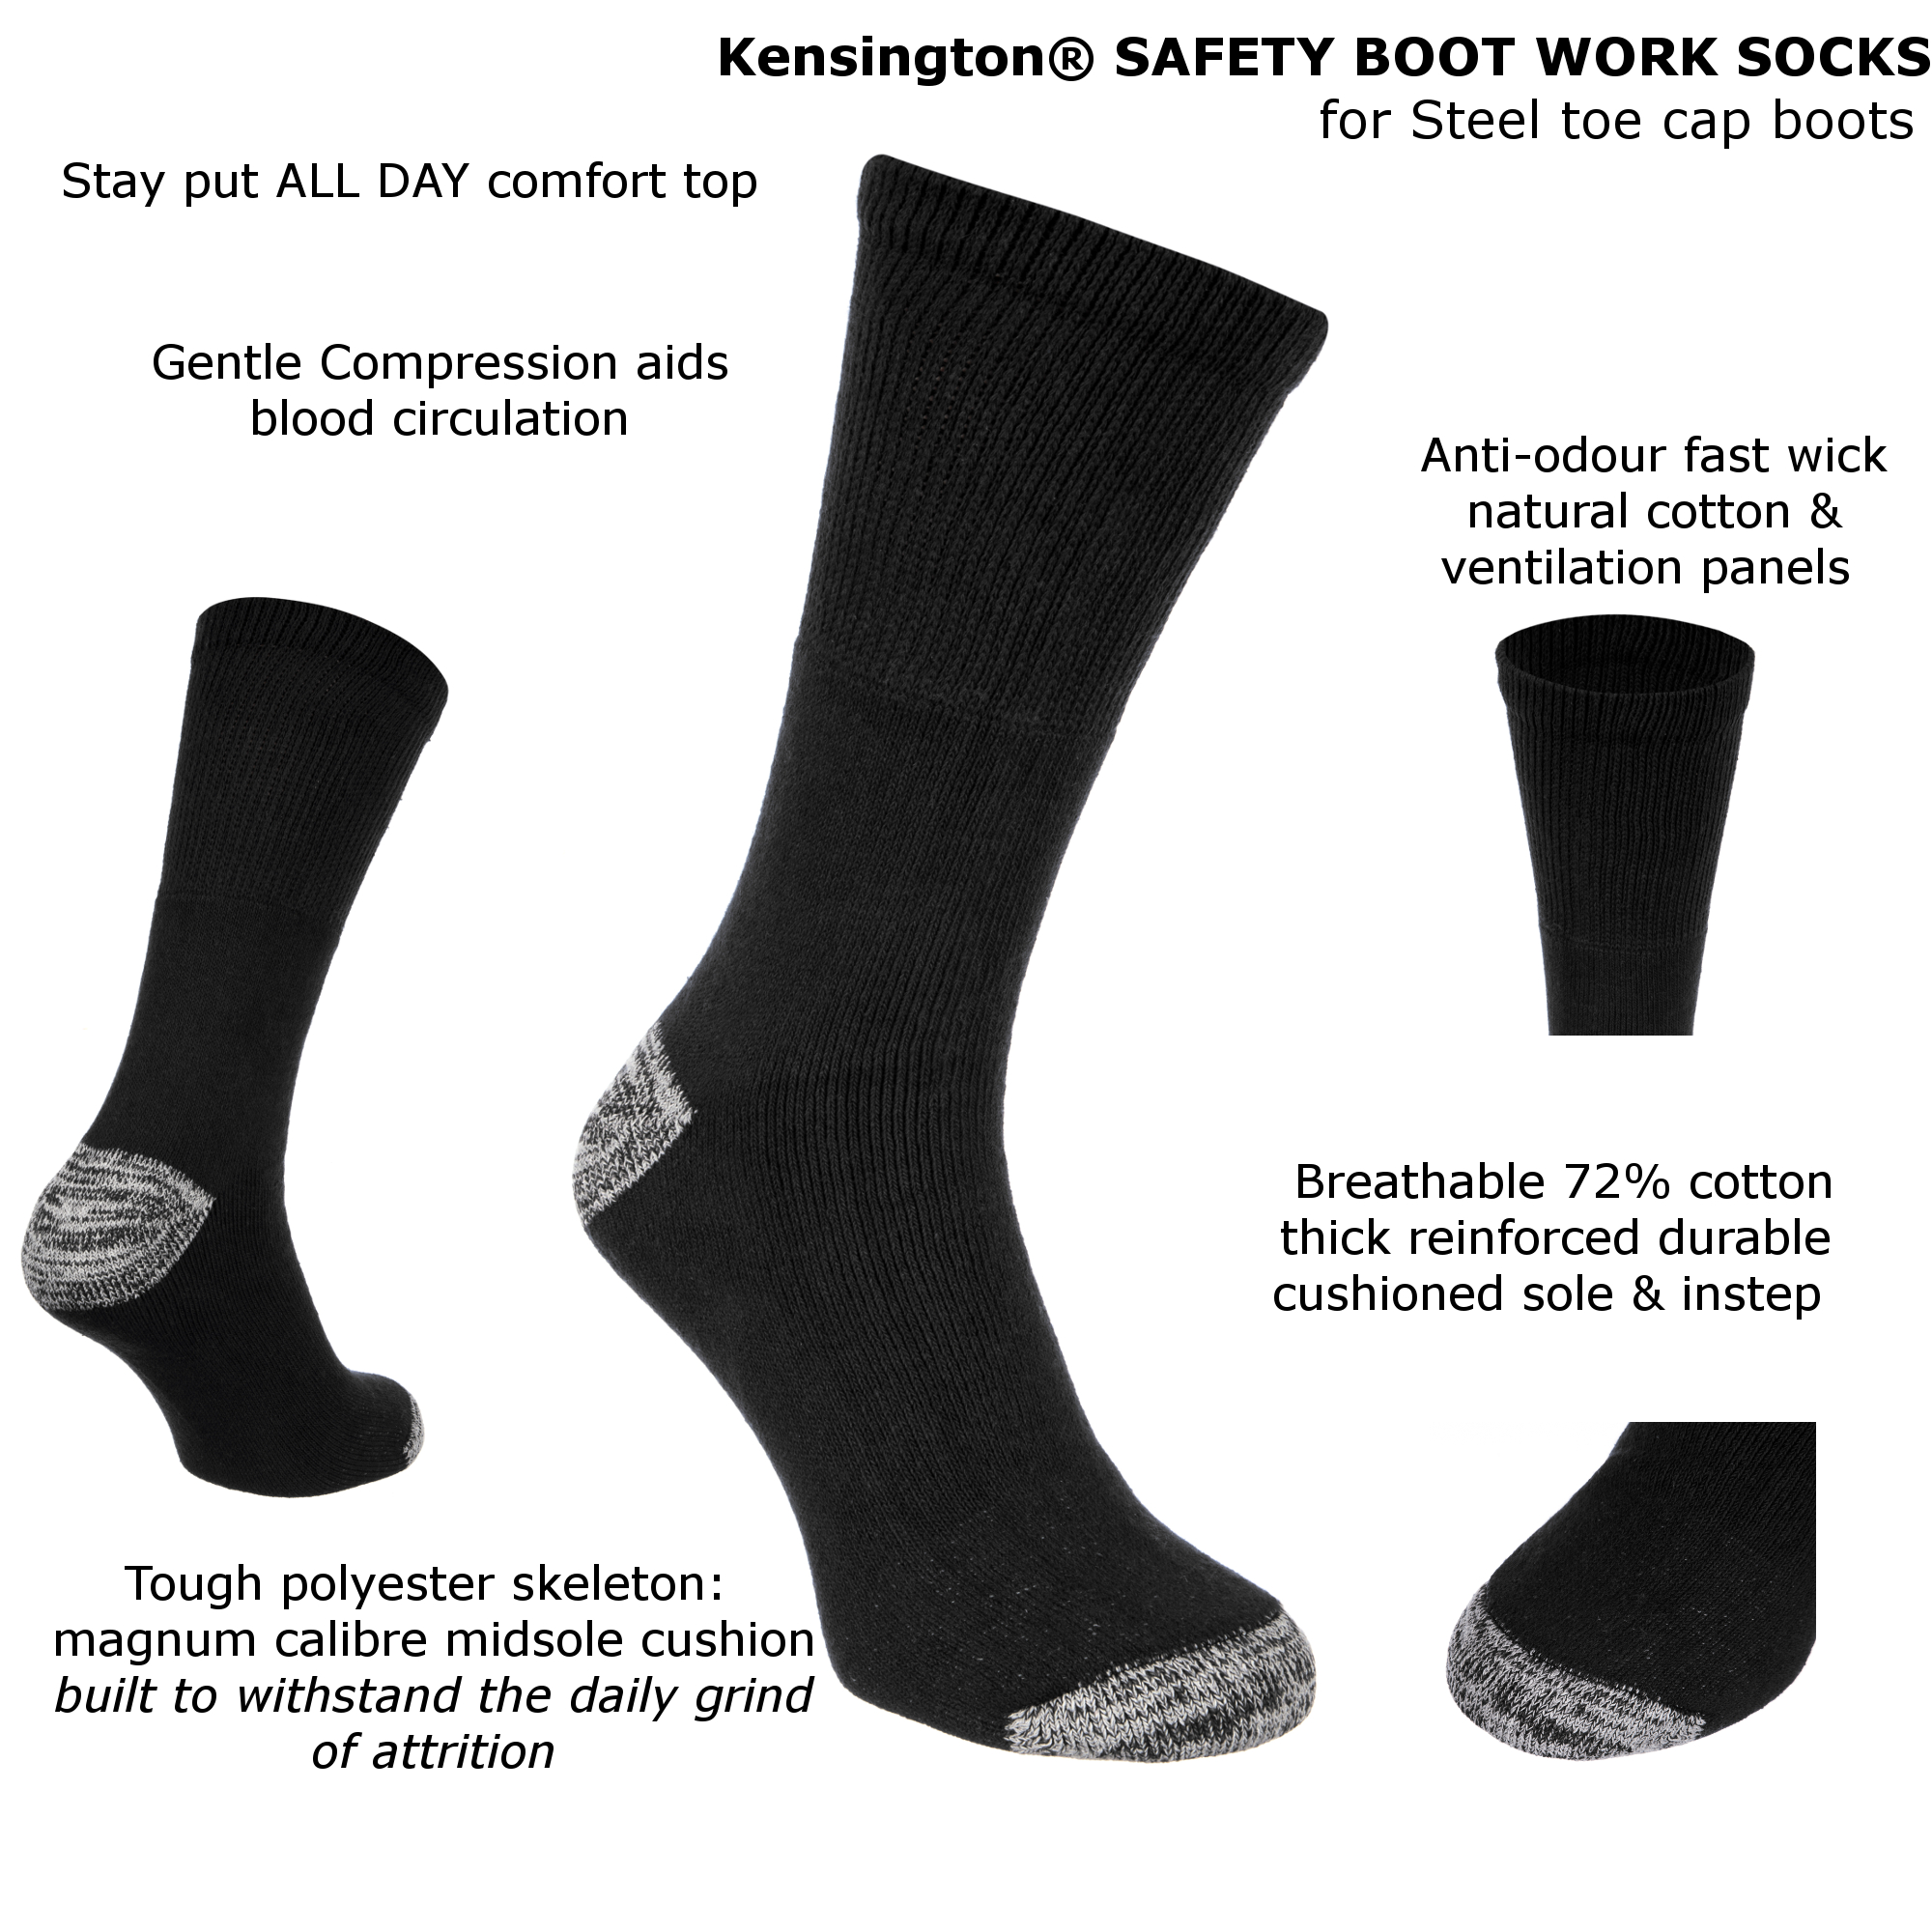 Kensington Work Socks